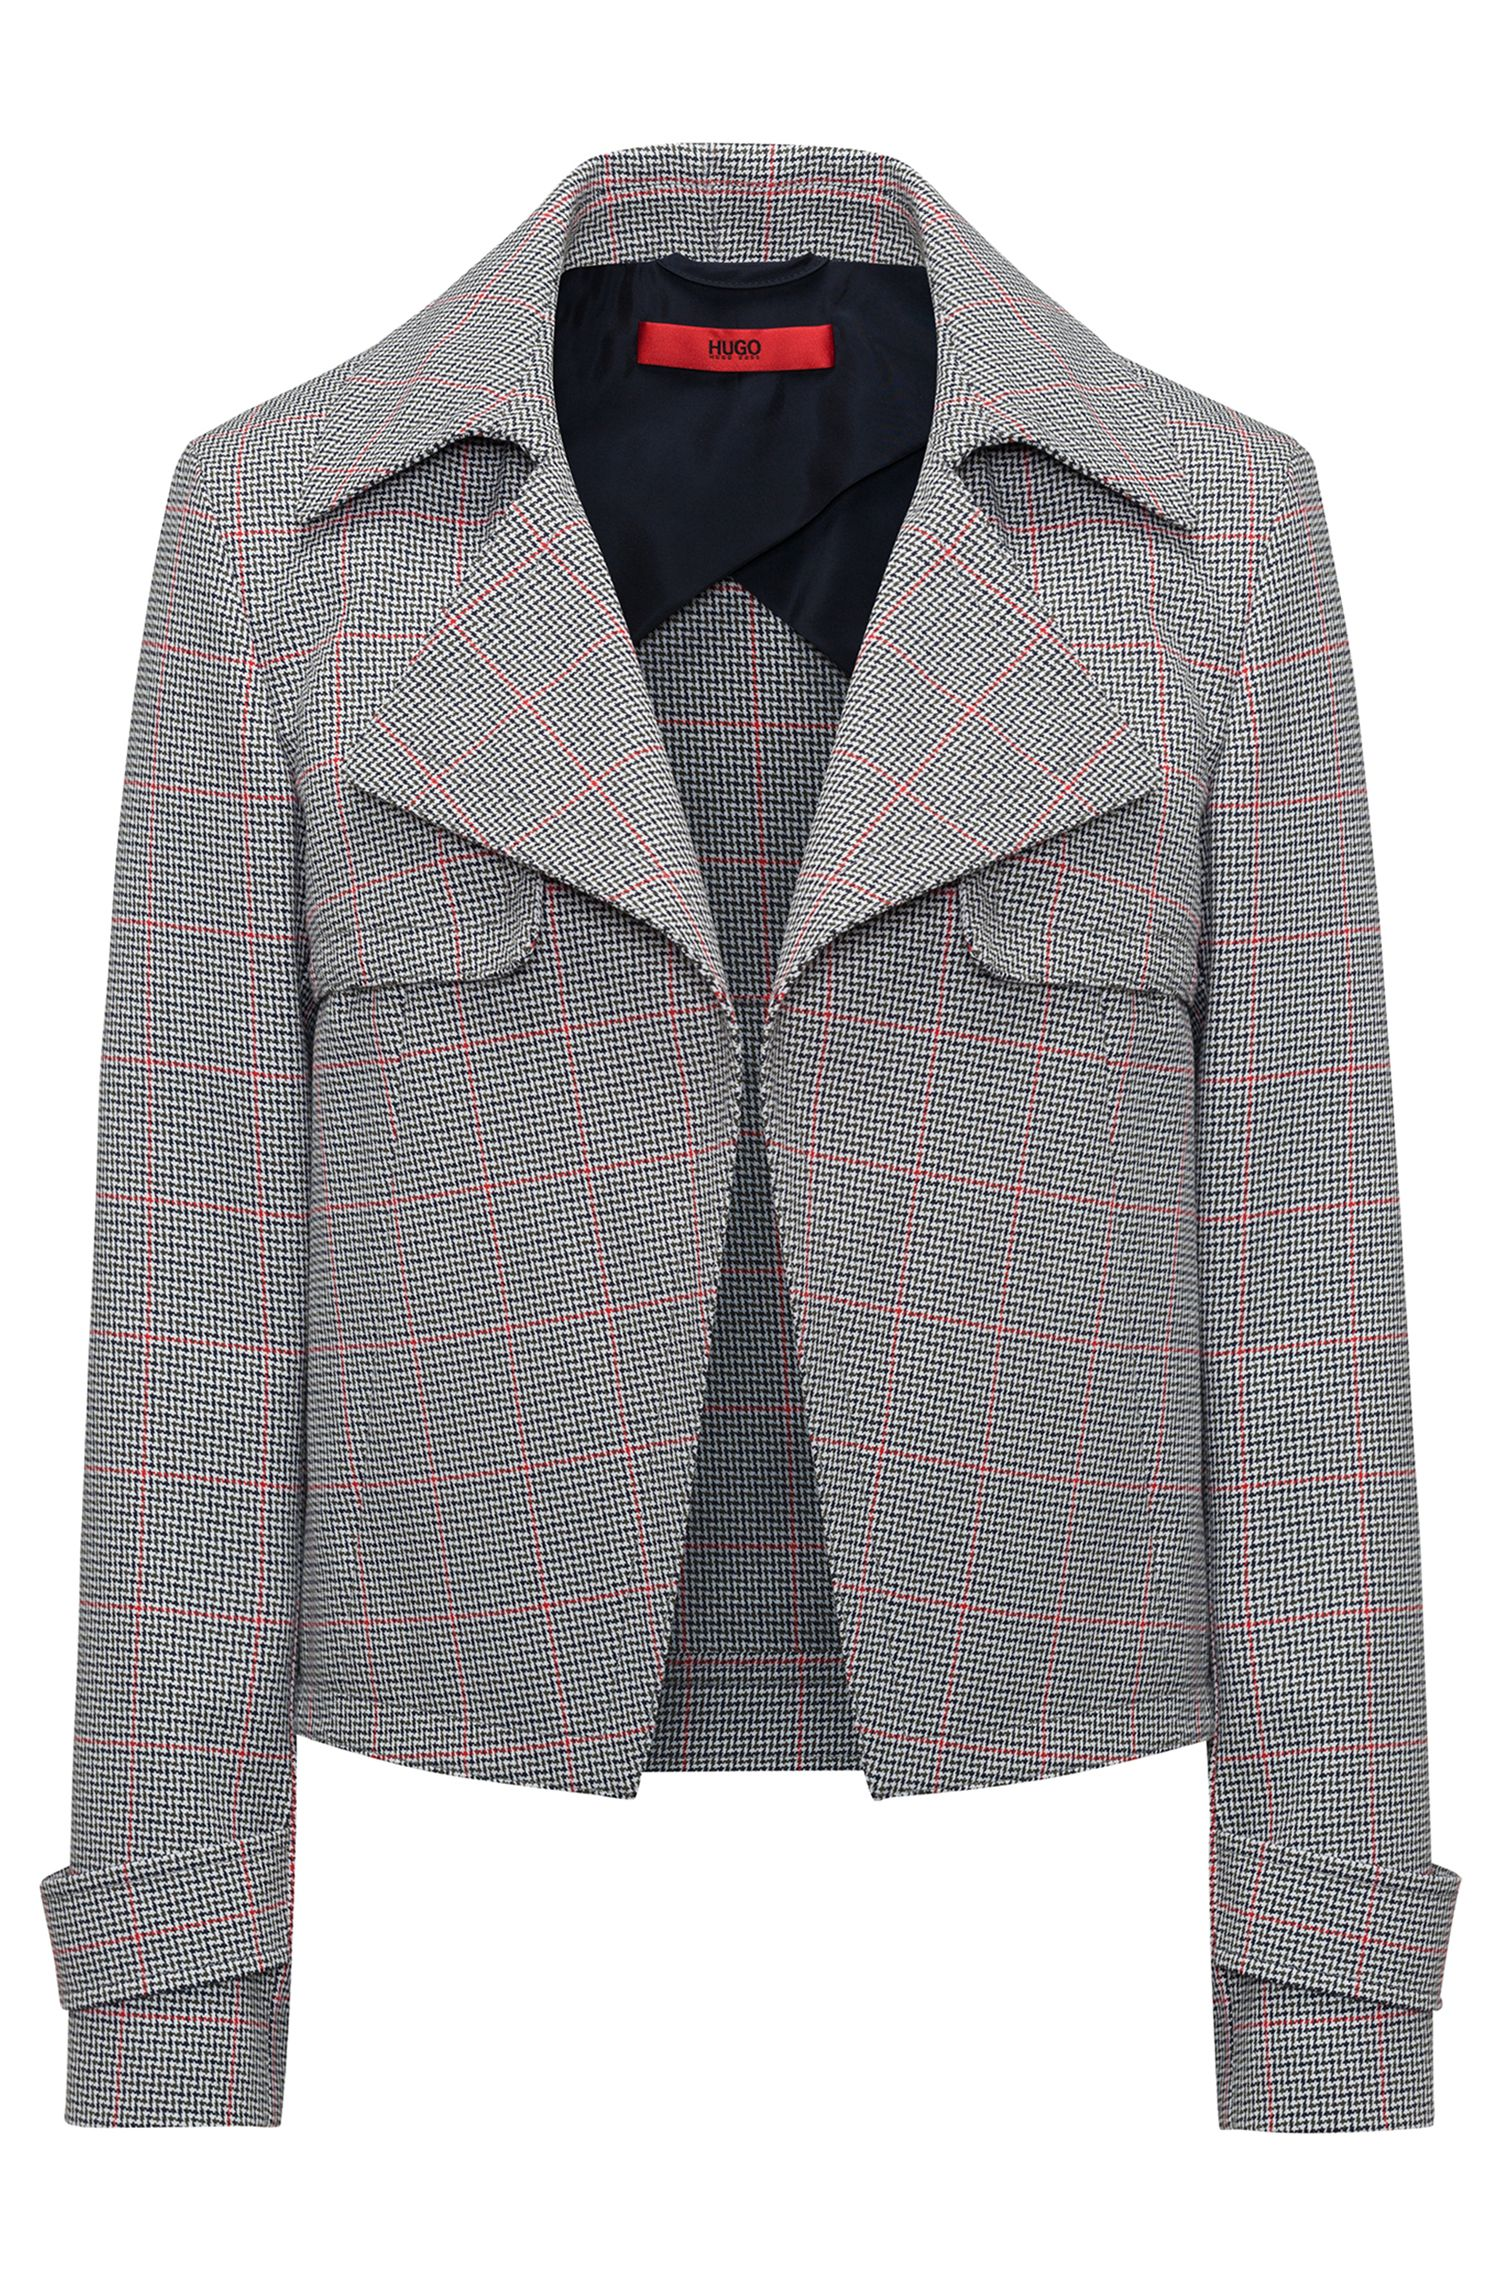 Hugo Boss - Relaxed-fit jacket in zigzag-check cotton - 1